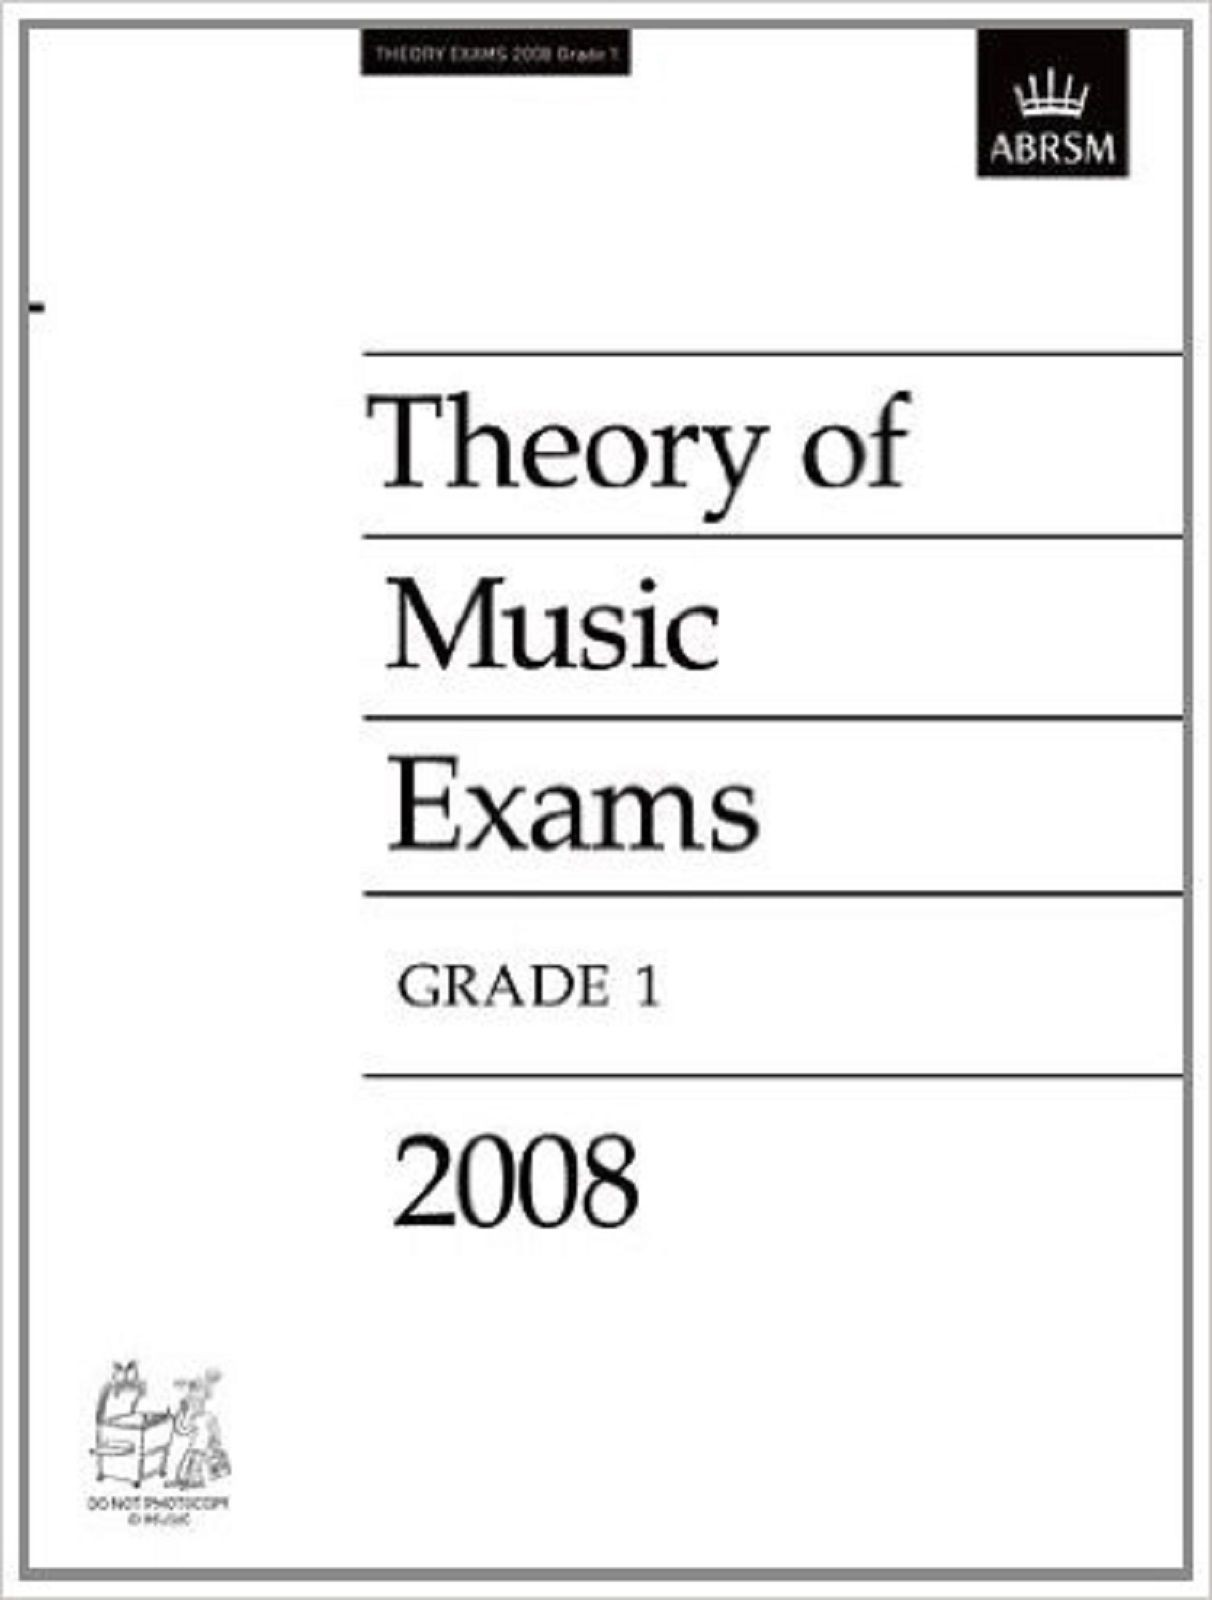 Theory Of Music Exams Grade 1 Past Practice Papers 2008 ABRSM S109